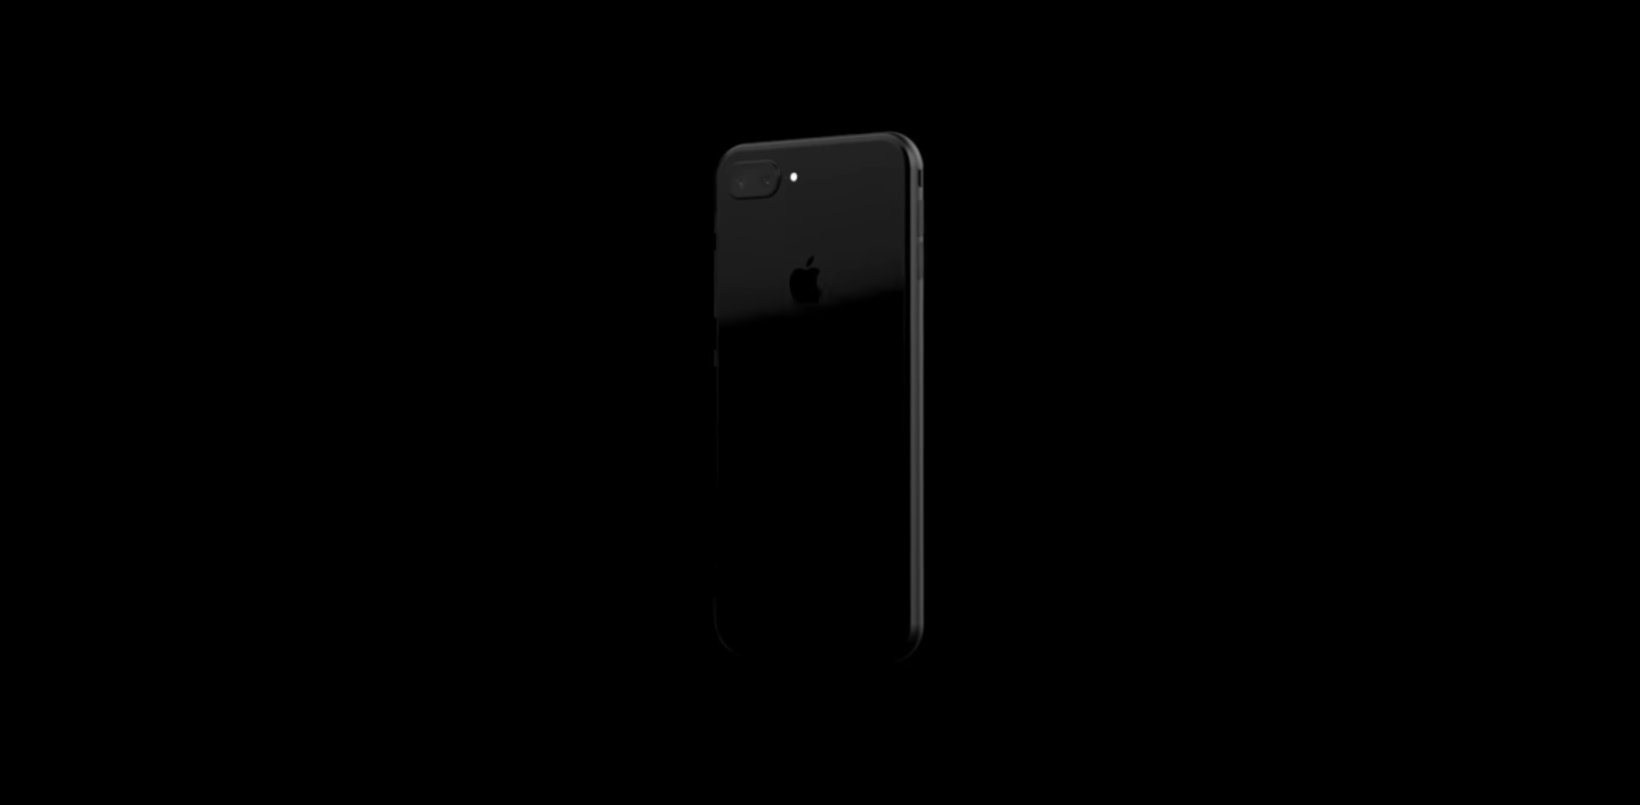 Apple might make augmented reality a stand-out feature in the iPhone 8